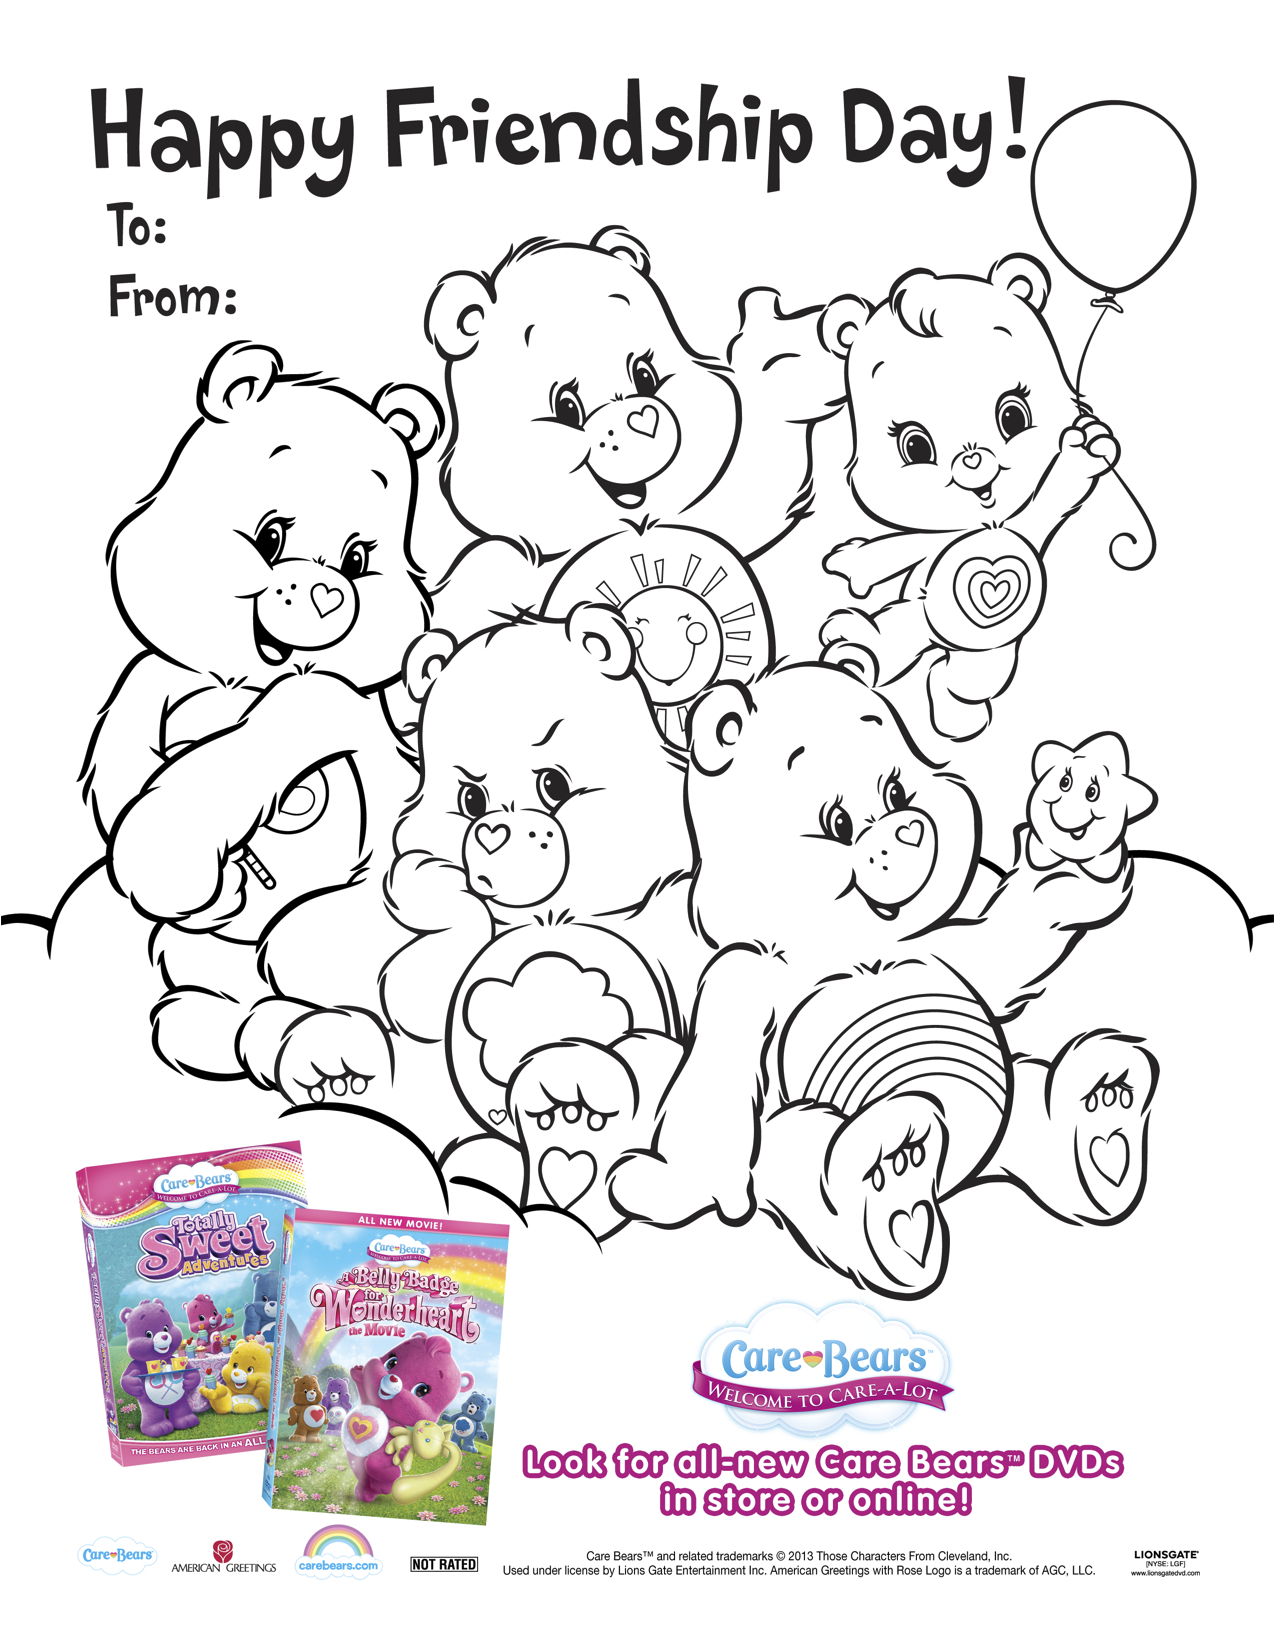 photo relating to Care Bear Belly Badges Printable titled Treatment Bears Printable Friendship Working day Coloring Site Mama